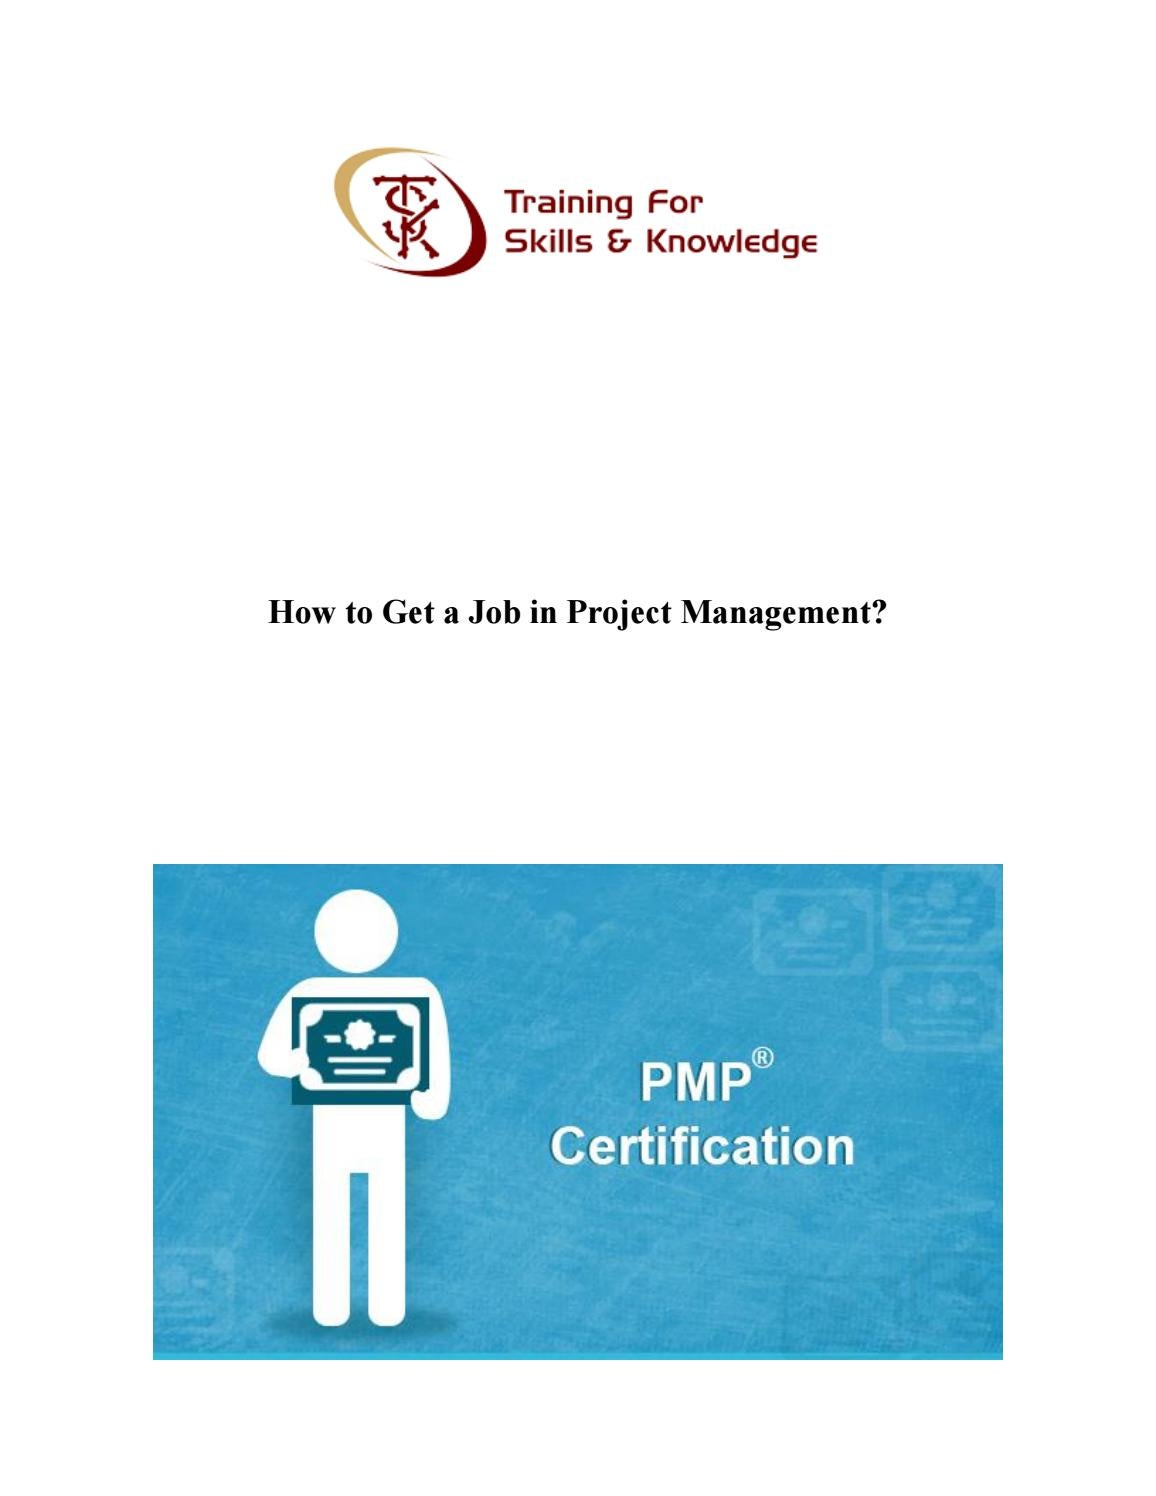 How To Get A Job In Project Management By Training For Skills And